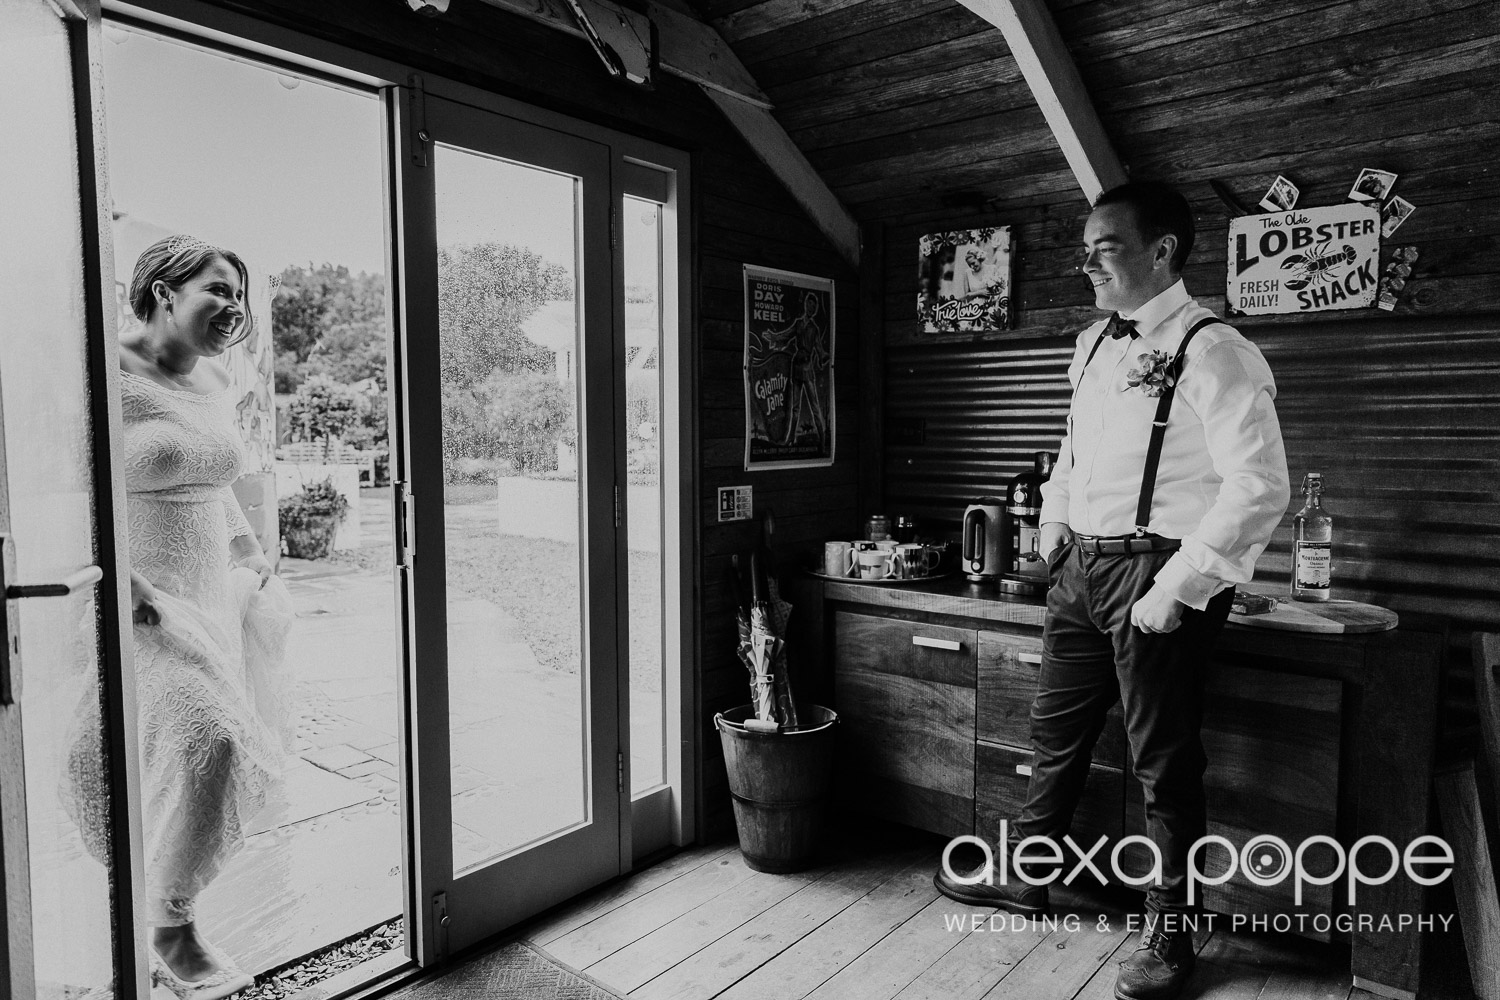 KM_elopement_lowerbarns_7.jpg